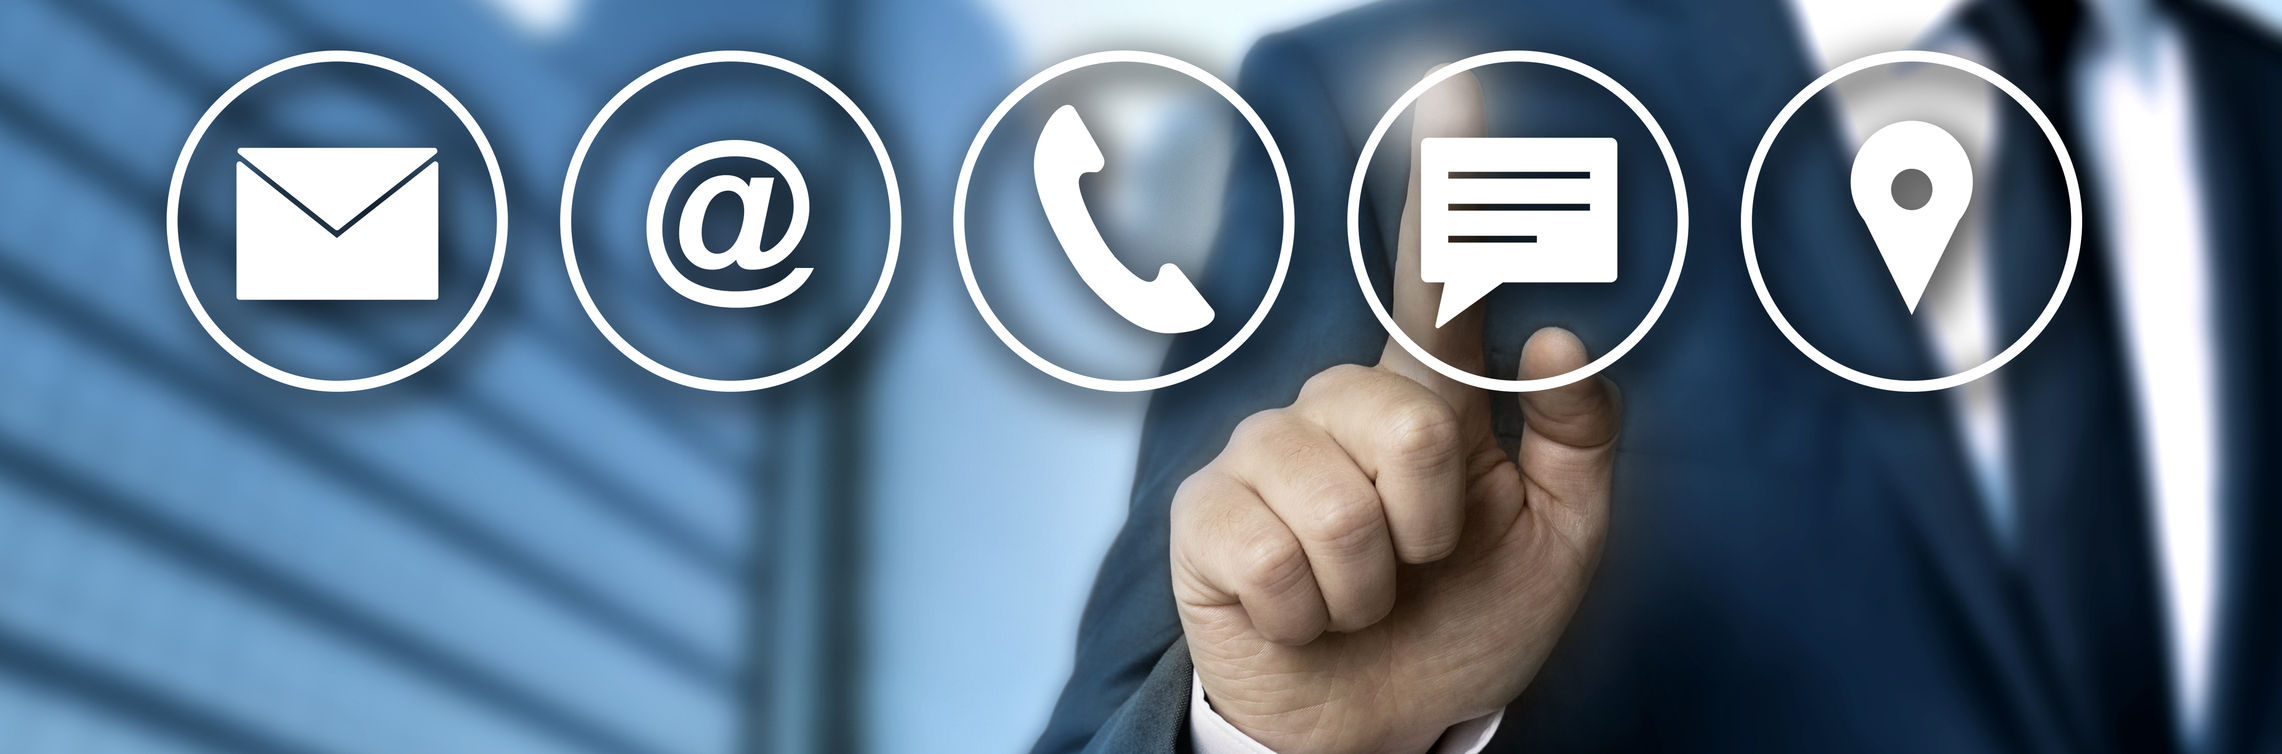 Contact options concept is shown by businessman